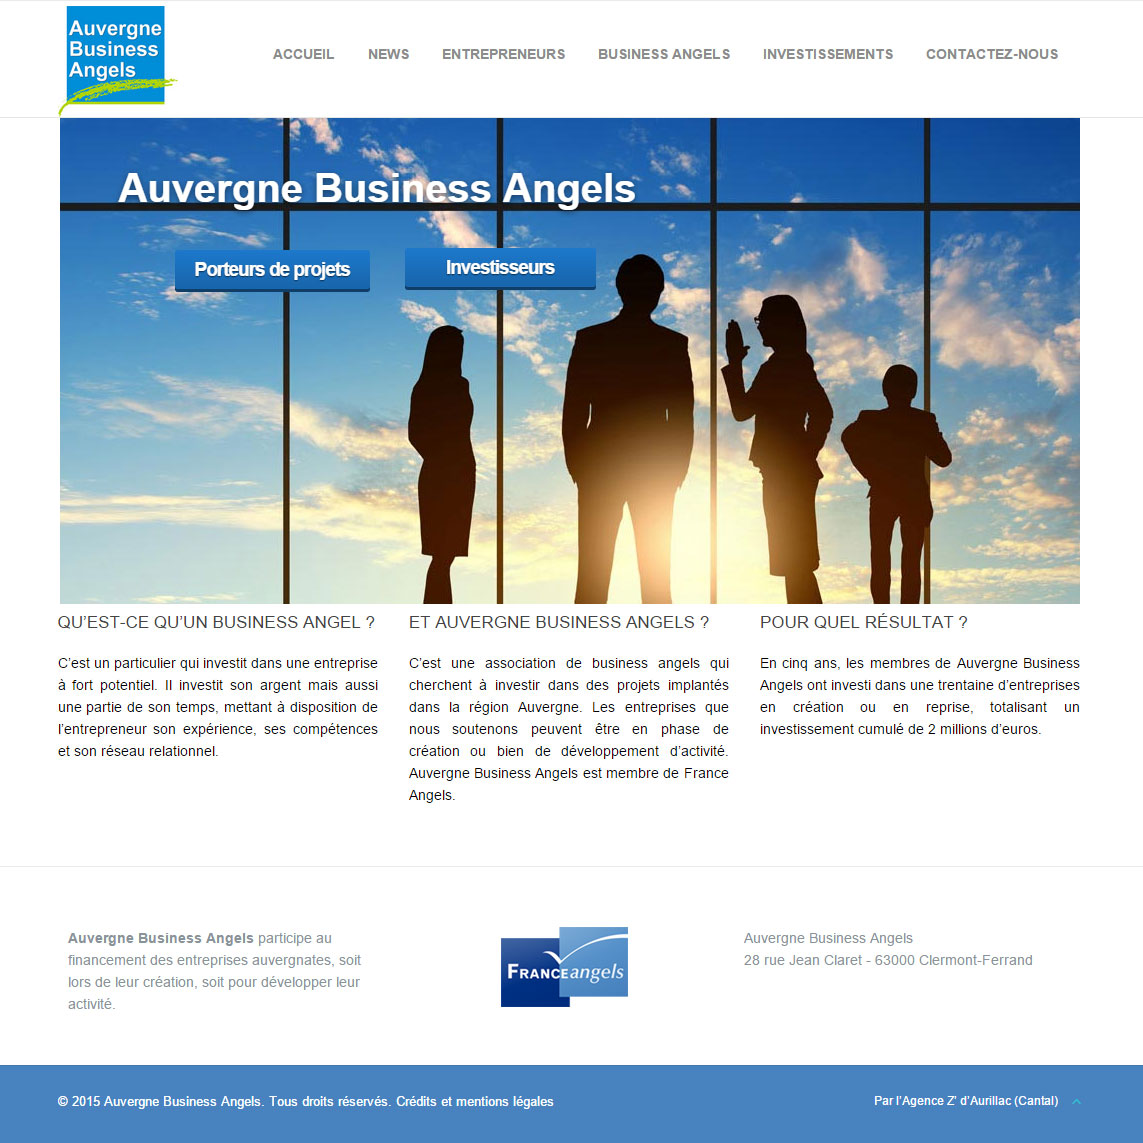 Auvergne Business Angels